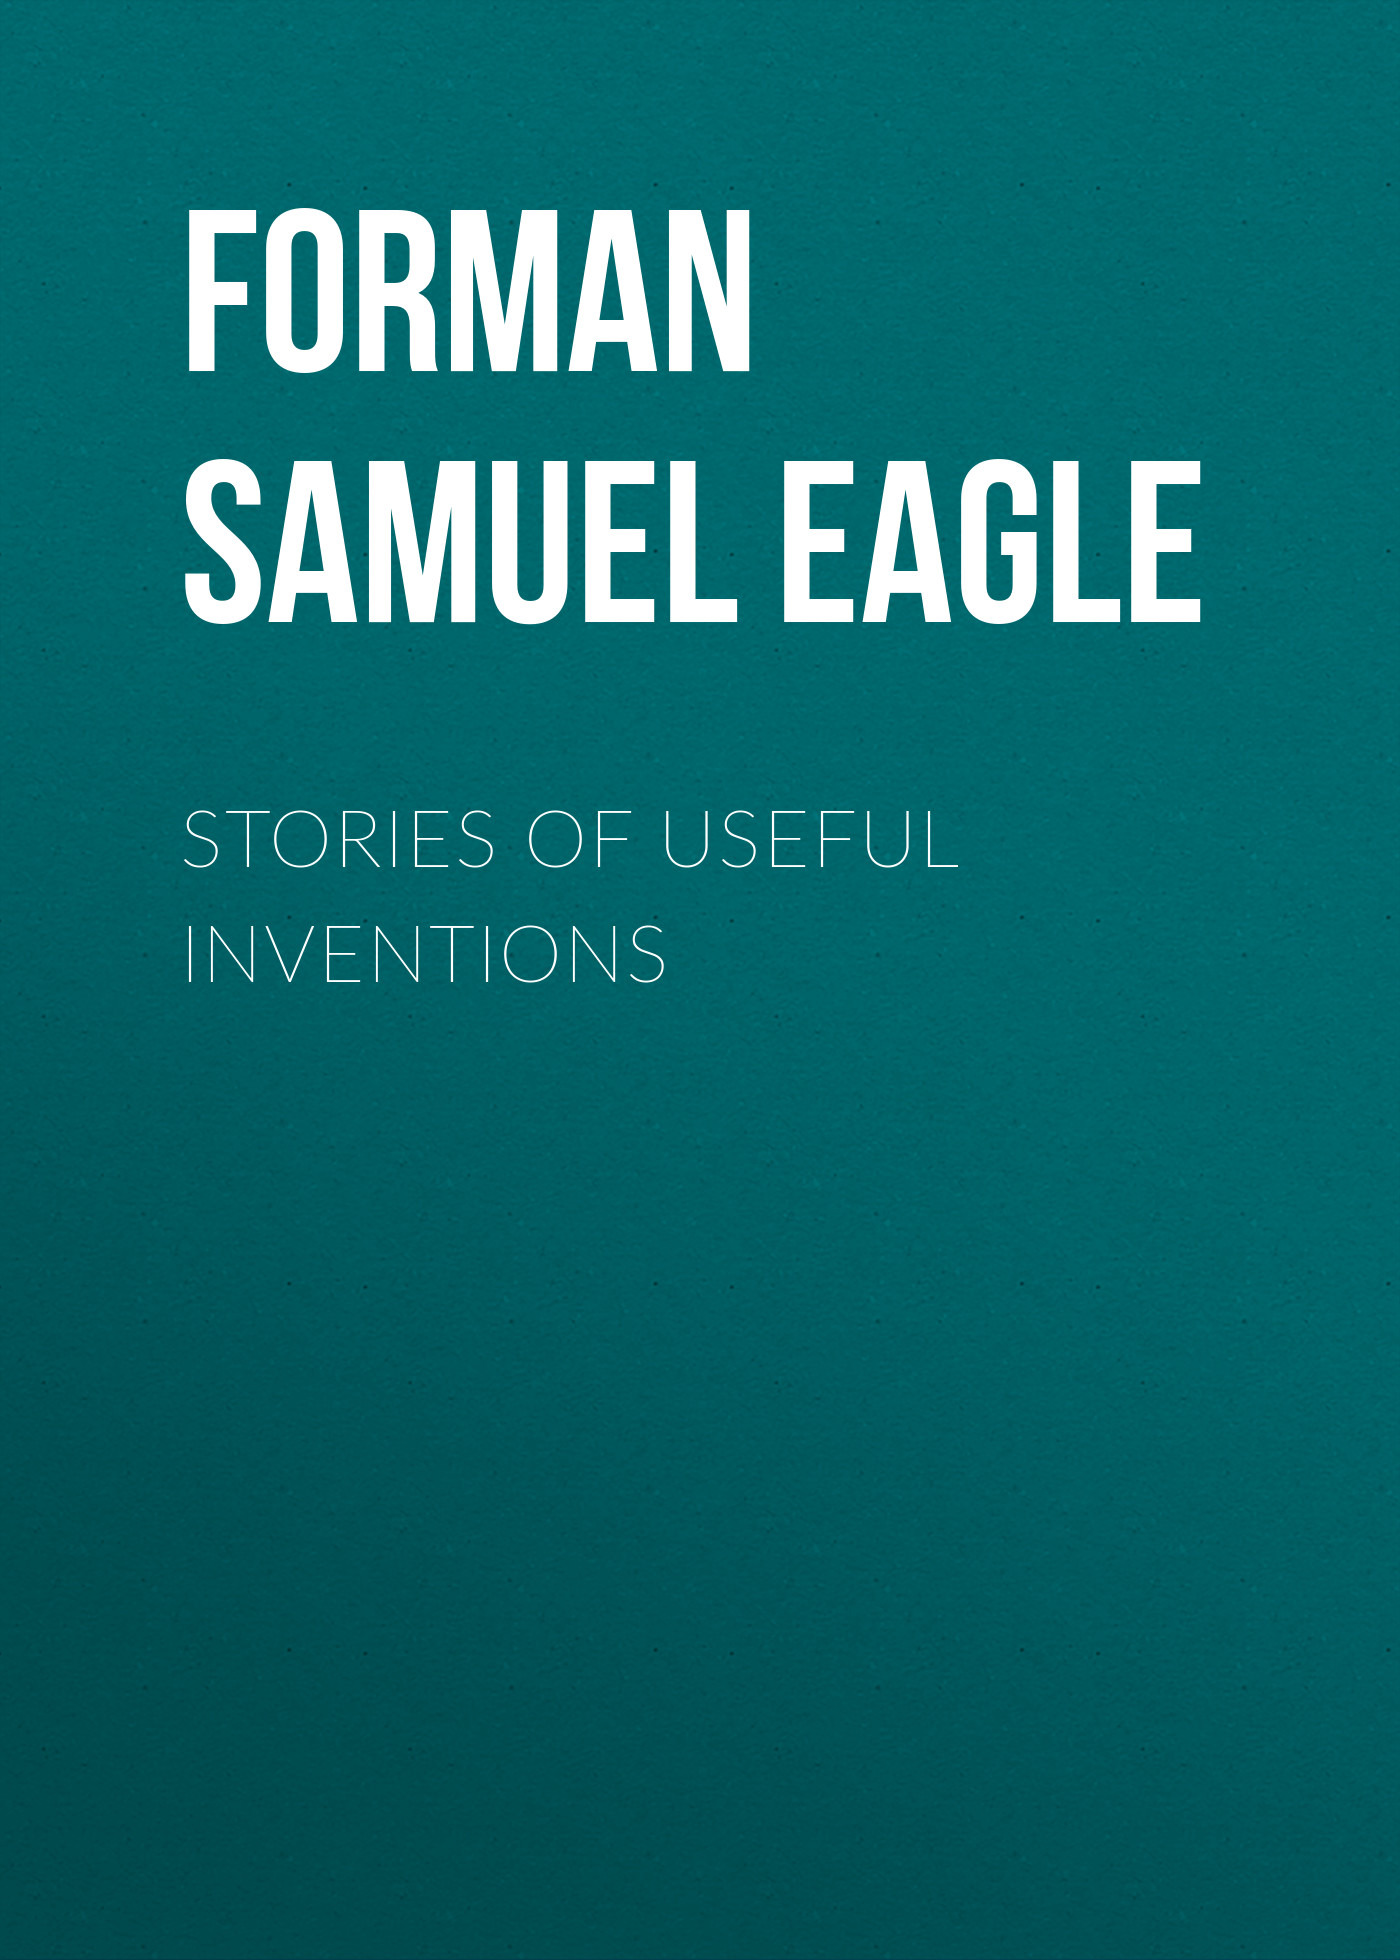 Forman Samuel Eagle Stories of Useful Inventions inventions